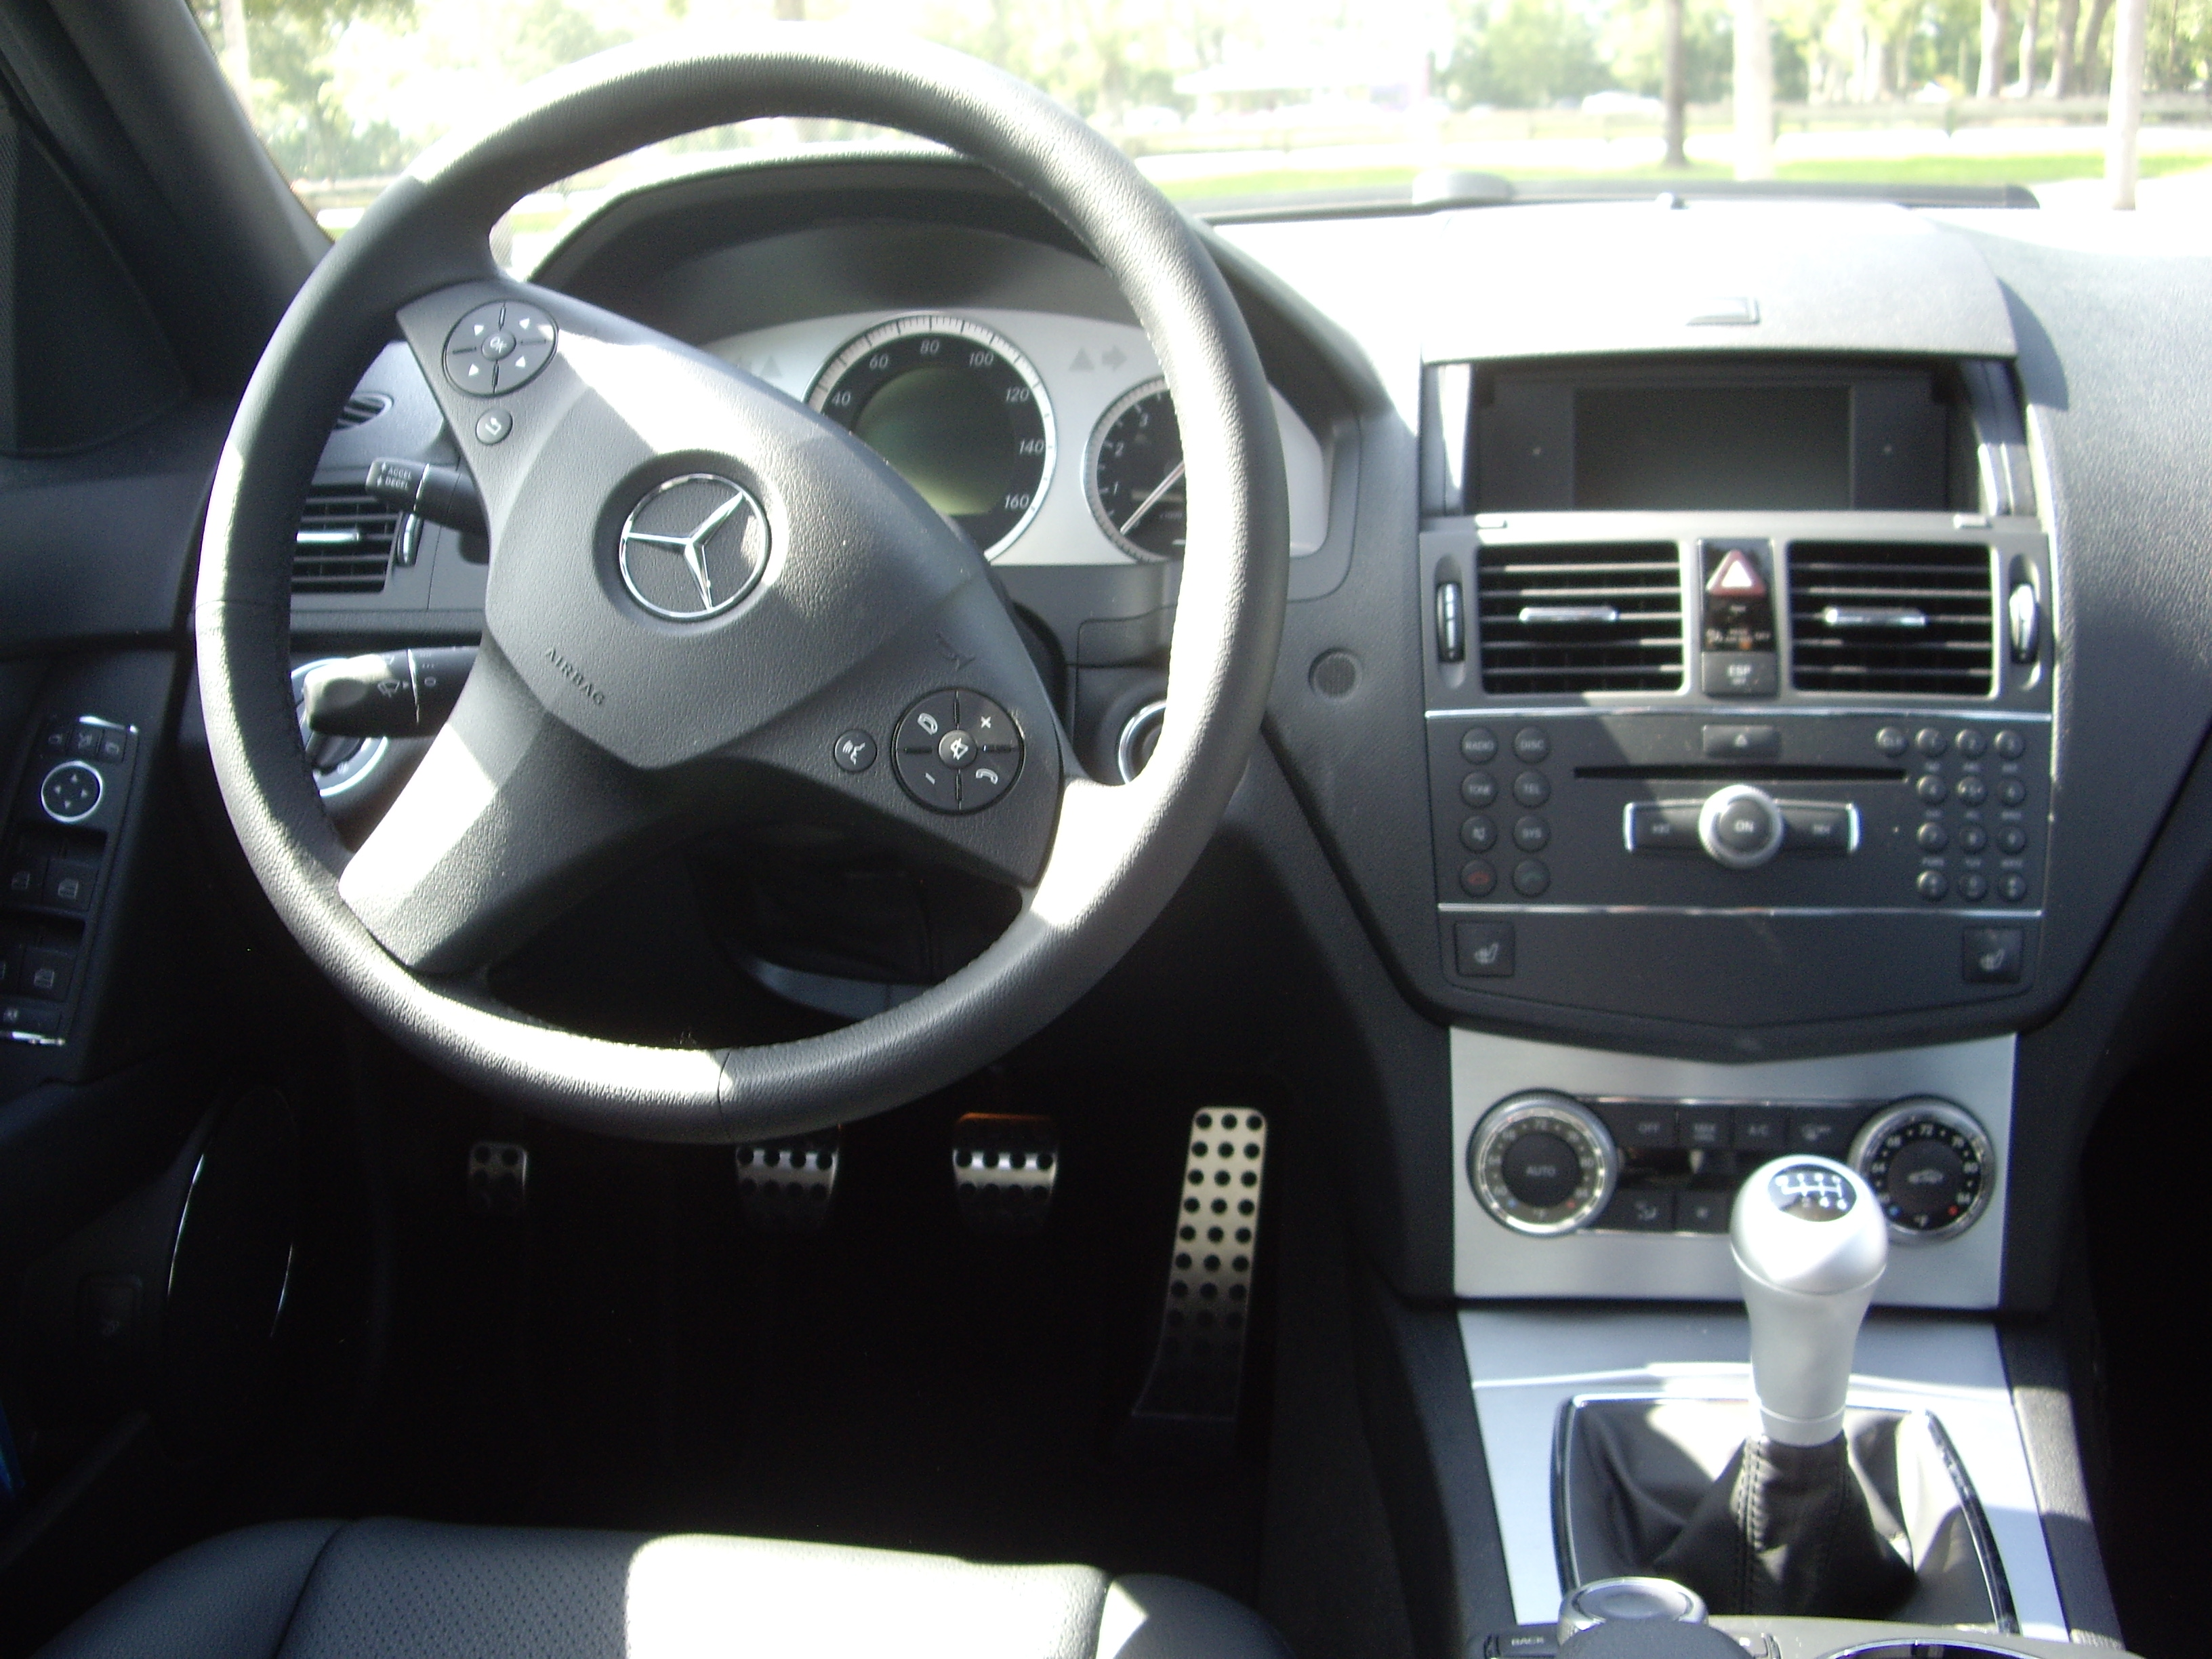 File:2007 Mercedes-Benz C300 Avantgarde (W204) interior 01.jpg